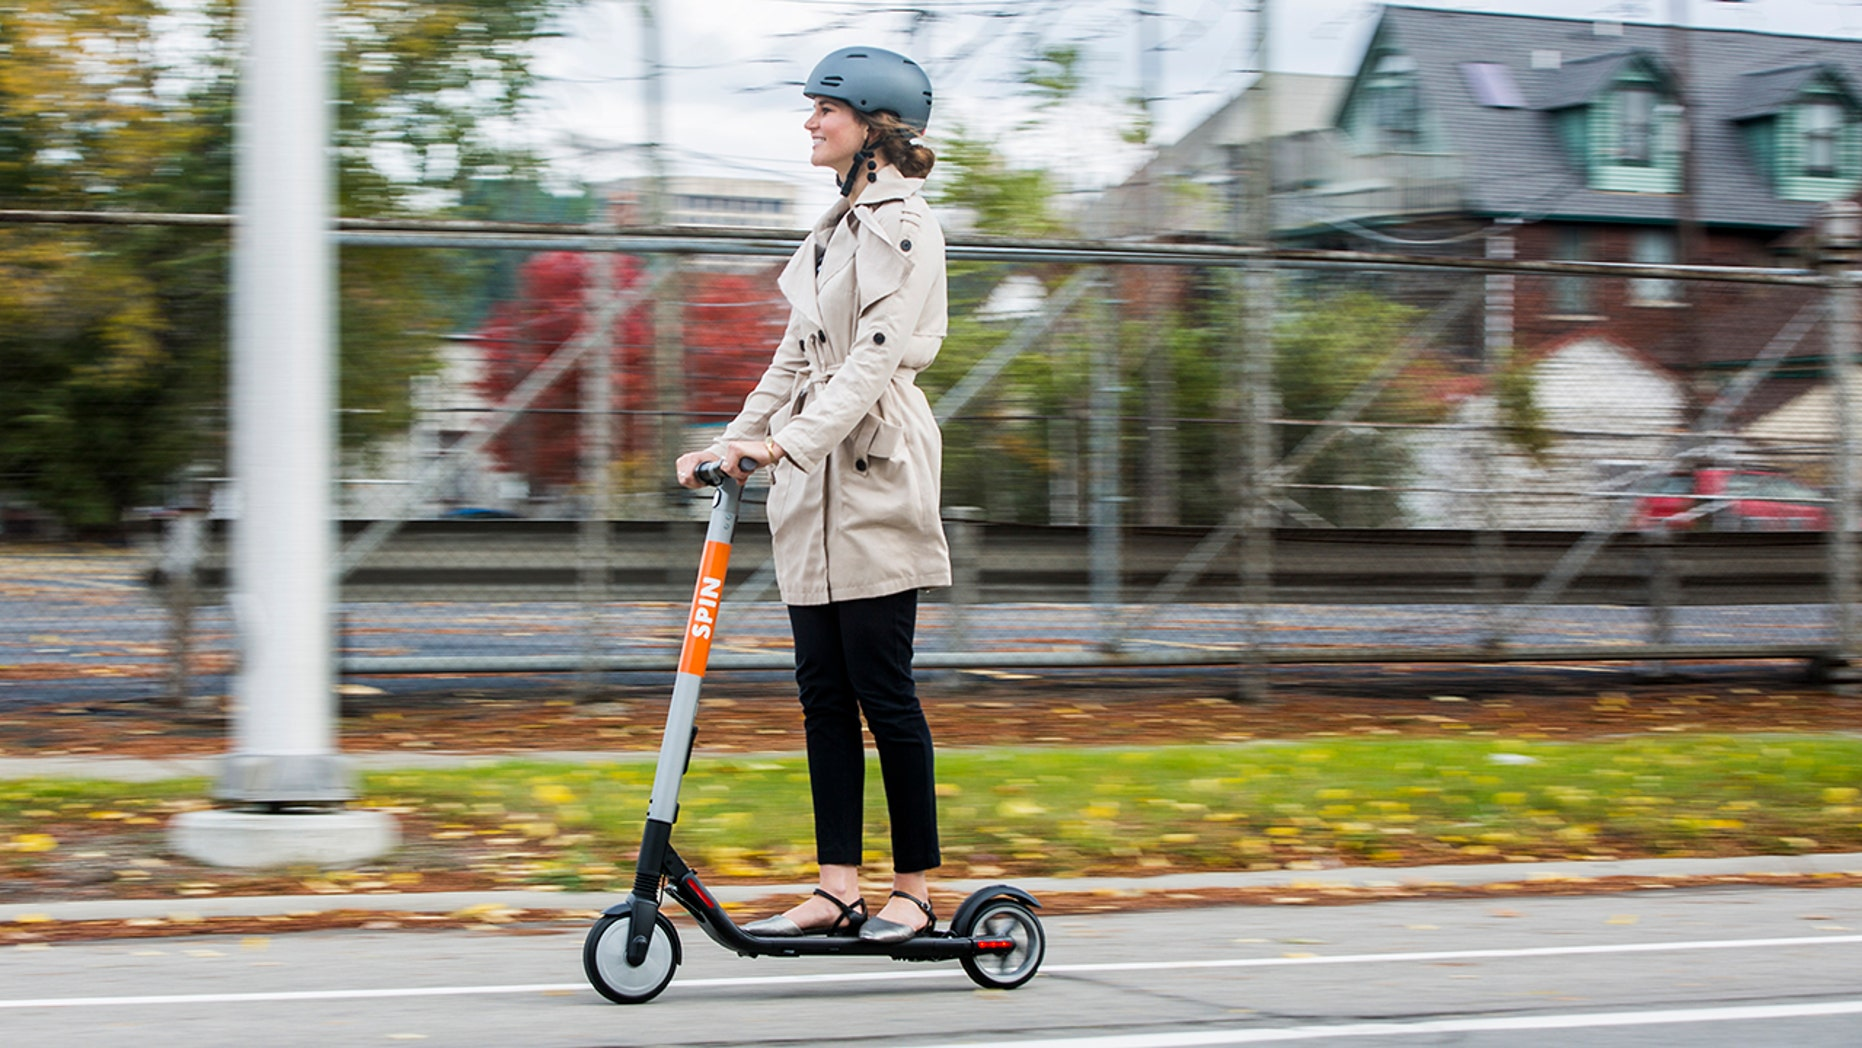 Ford Jumps Into the Electric Scooter Business With Purchase of Spin Startup